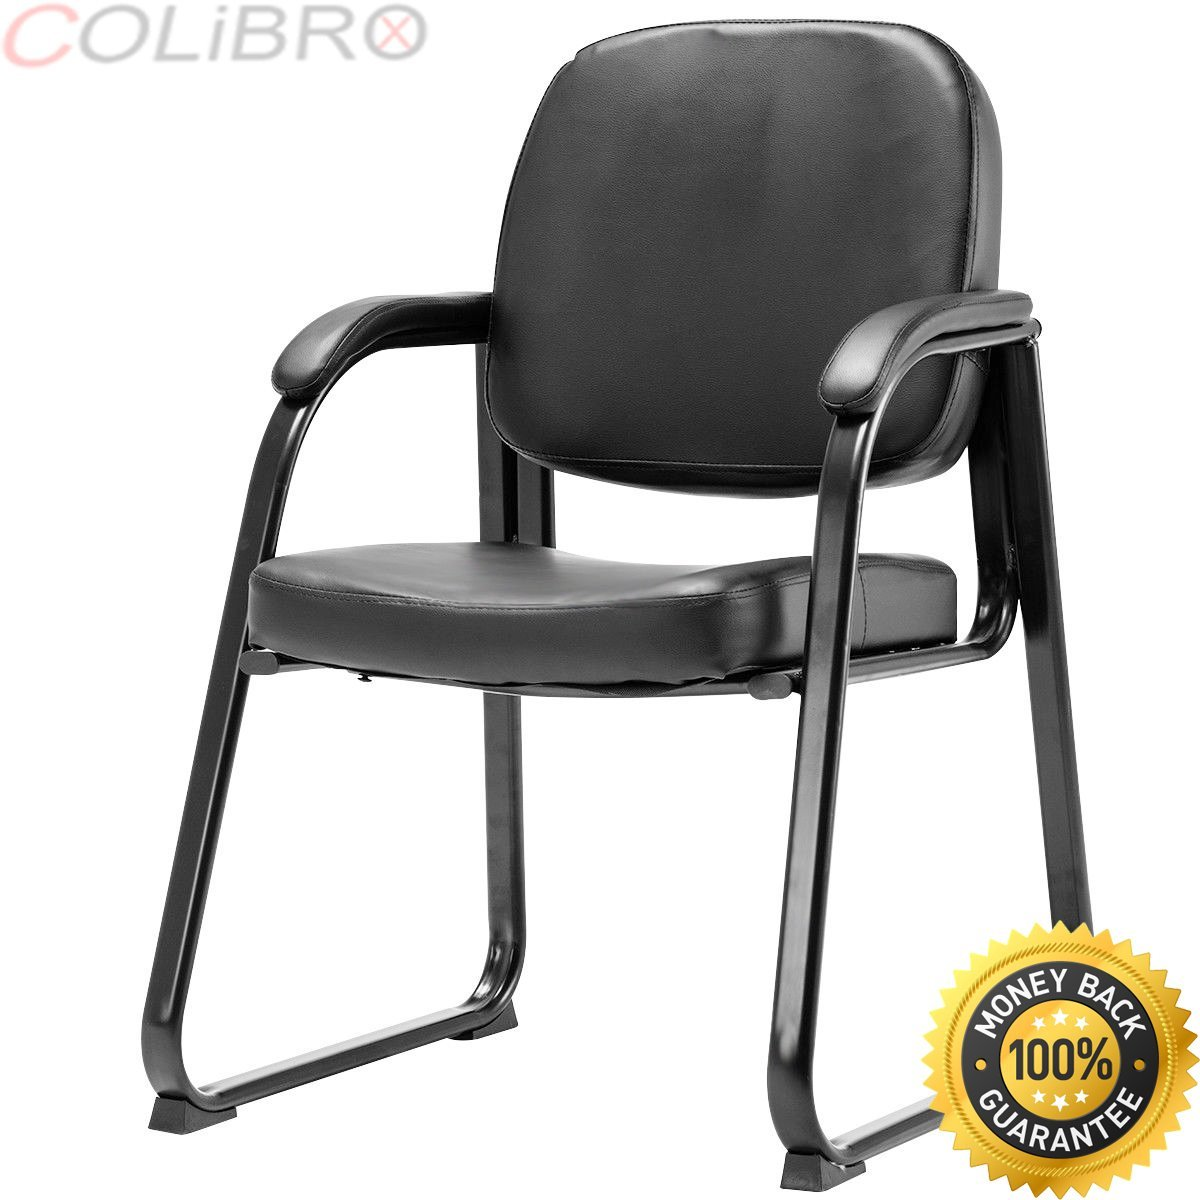 COLIBROX--Set of 2 PU Conference Chair Reception Guest Office Lecture Exam ArmChair New.guest chairs for office.best modern office guest chairs amazon.waiting room chairs walmart.amazon office chairs.